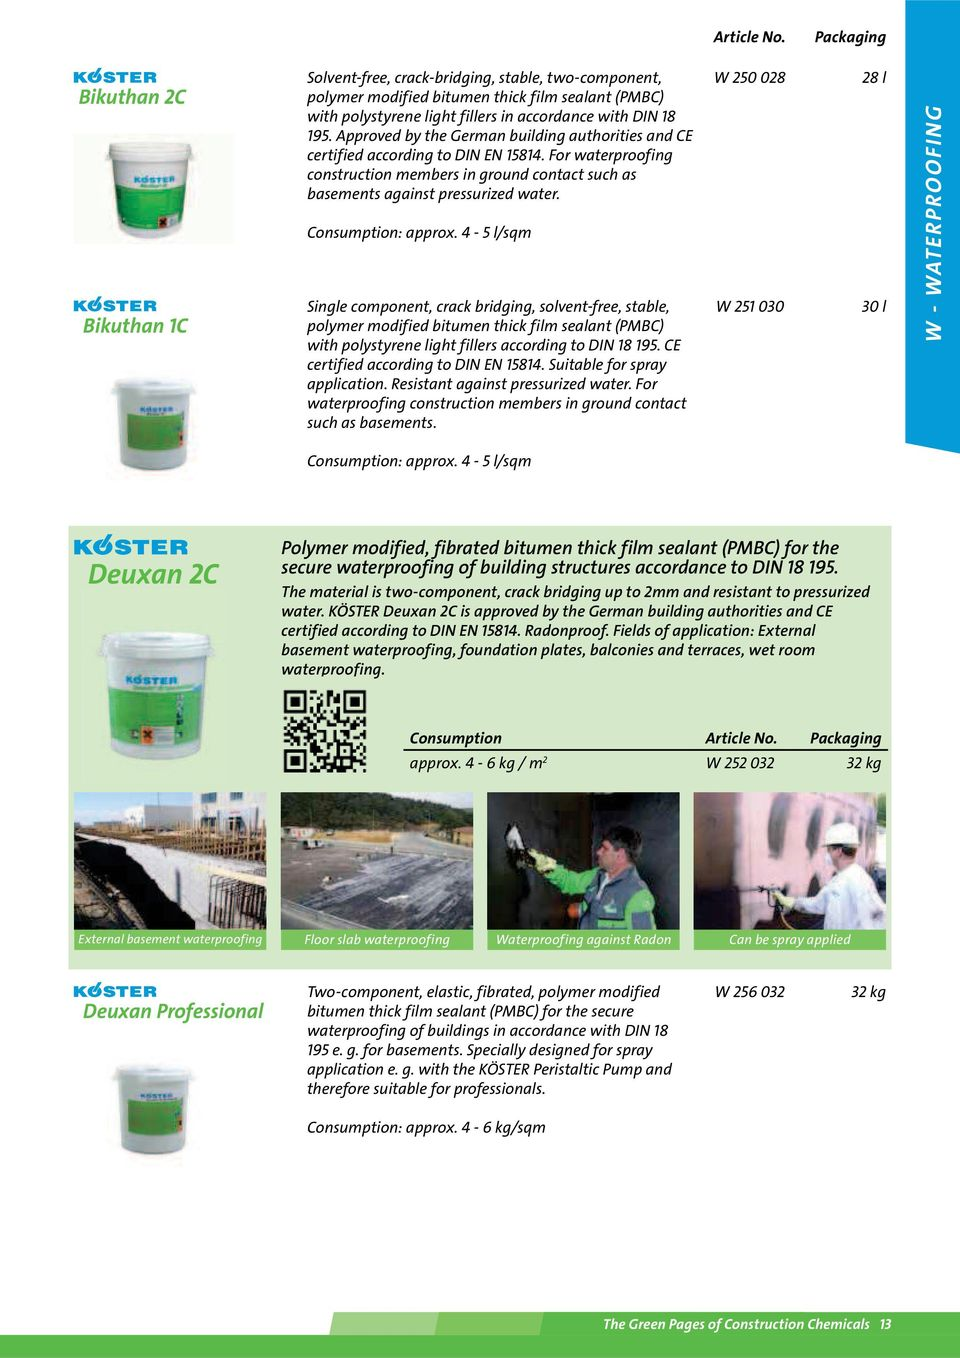 Approved by the German building authorities and CE certified according to DIN EN 15814. For waterproofing construction members in ground contact such as basements against pressurized water.